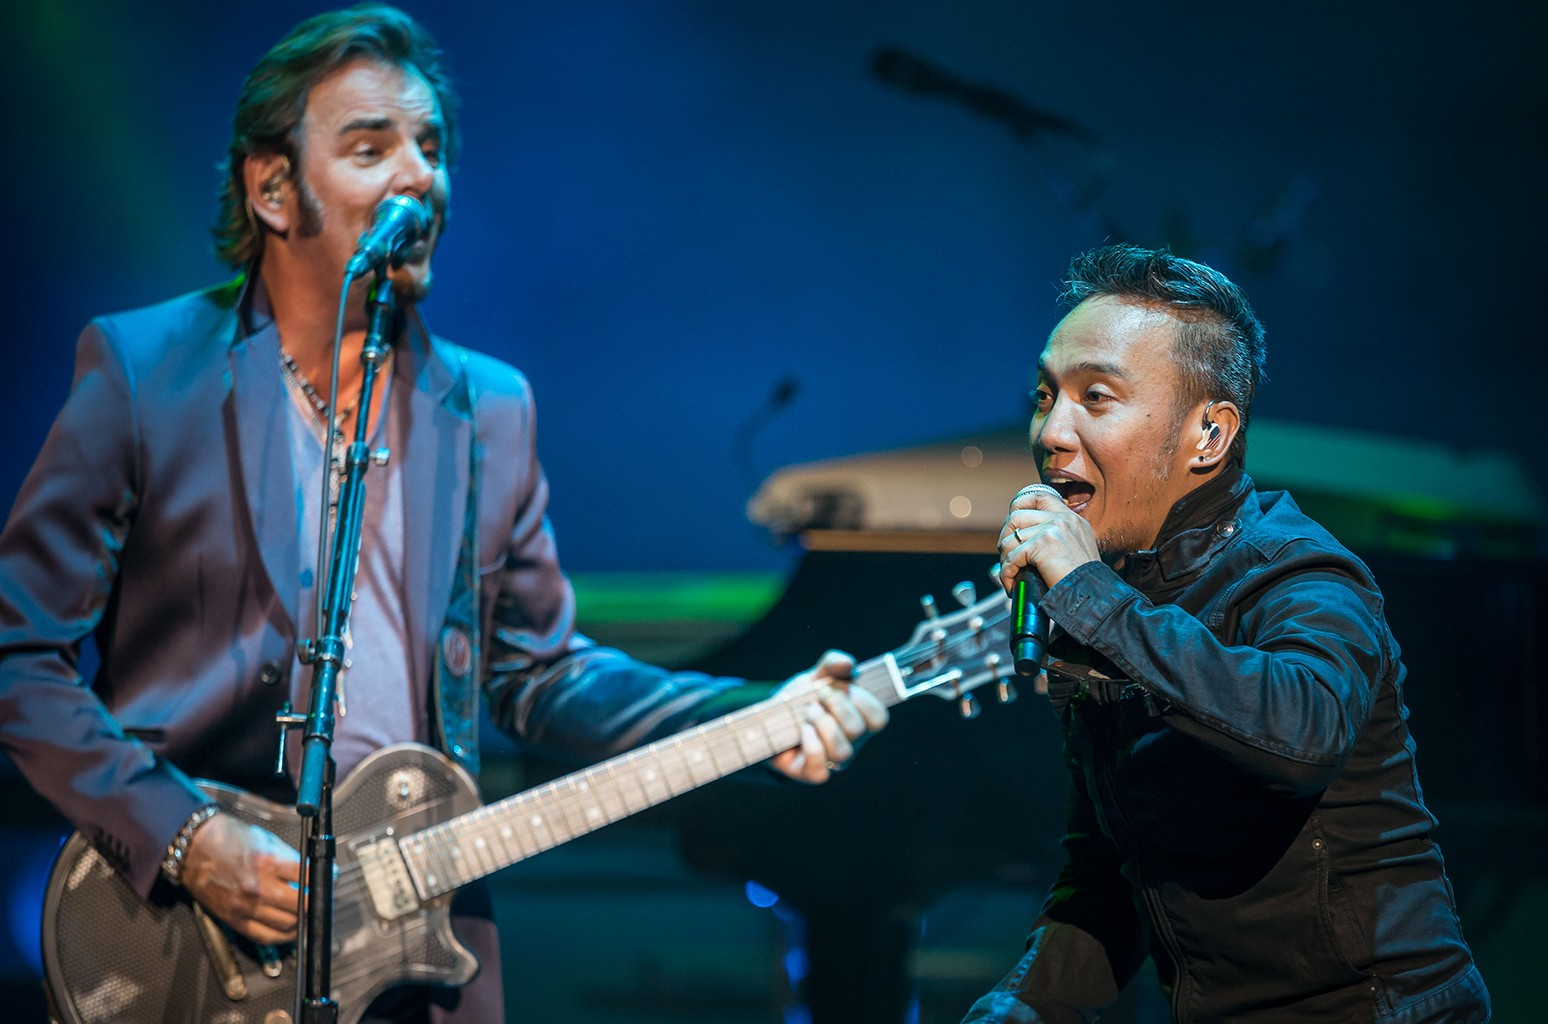 Jonathan Cain and Arnel Pineda of Journey